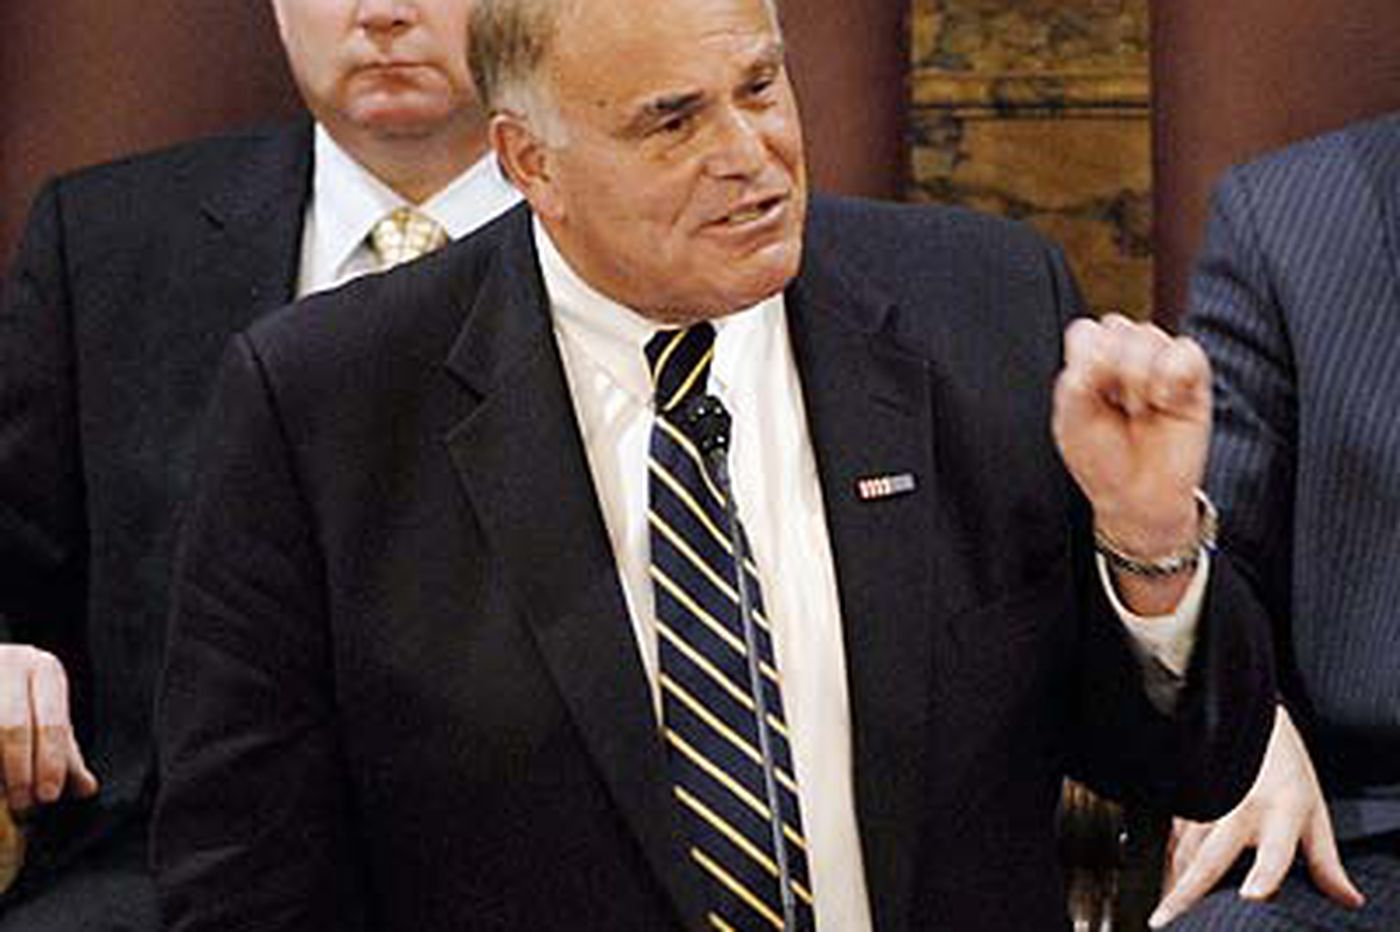 Rendell wants to consolidate 400 PA school districts